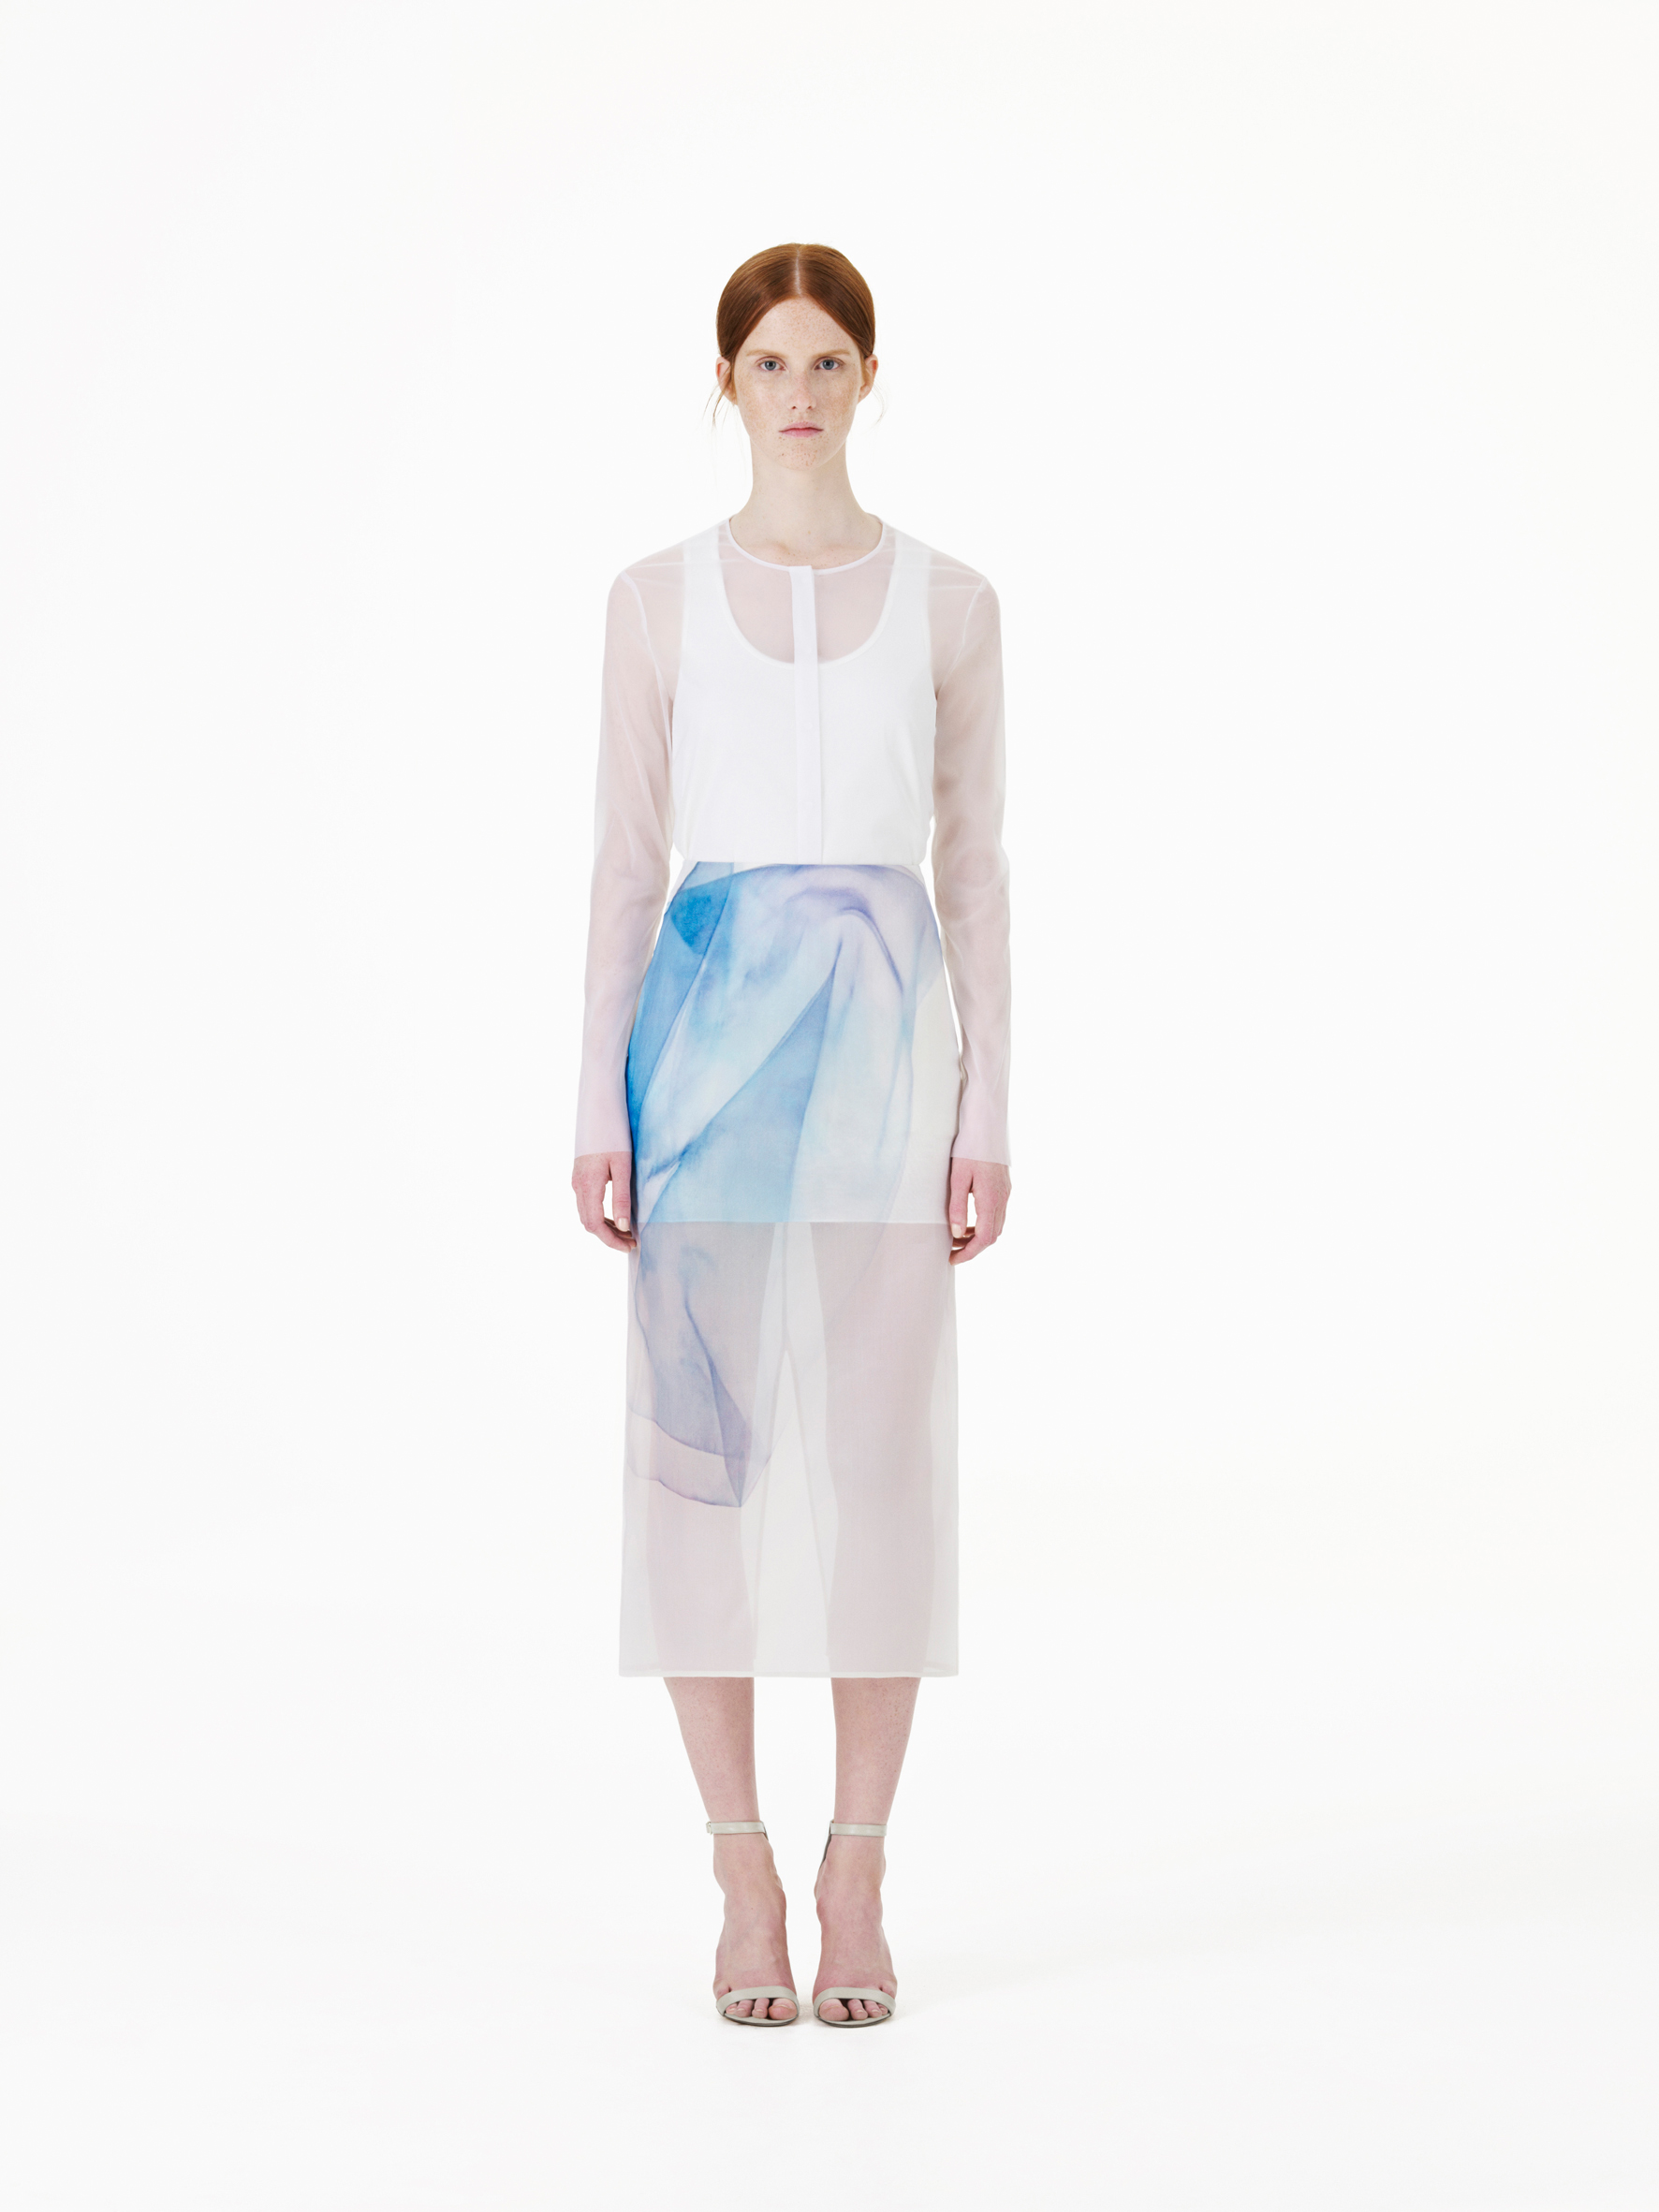 COS_SS14_WOMENS_29_lowres